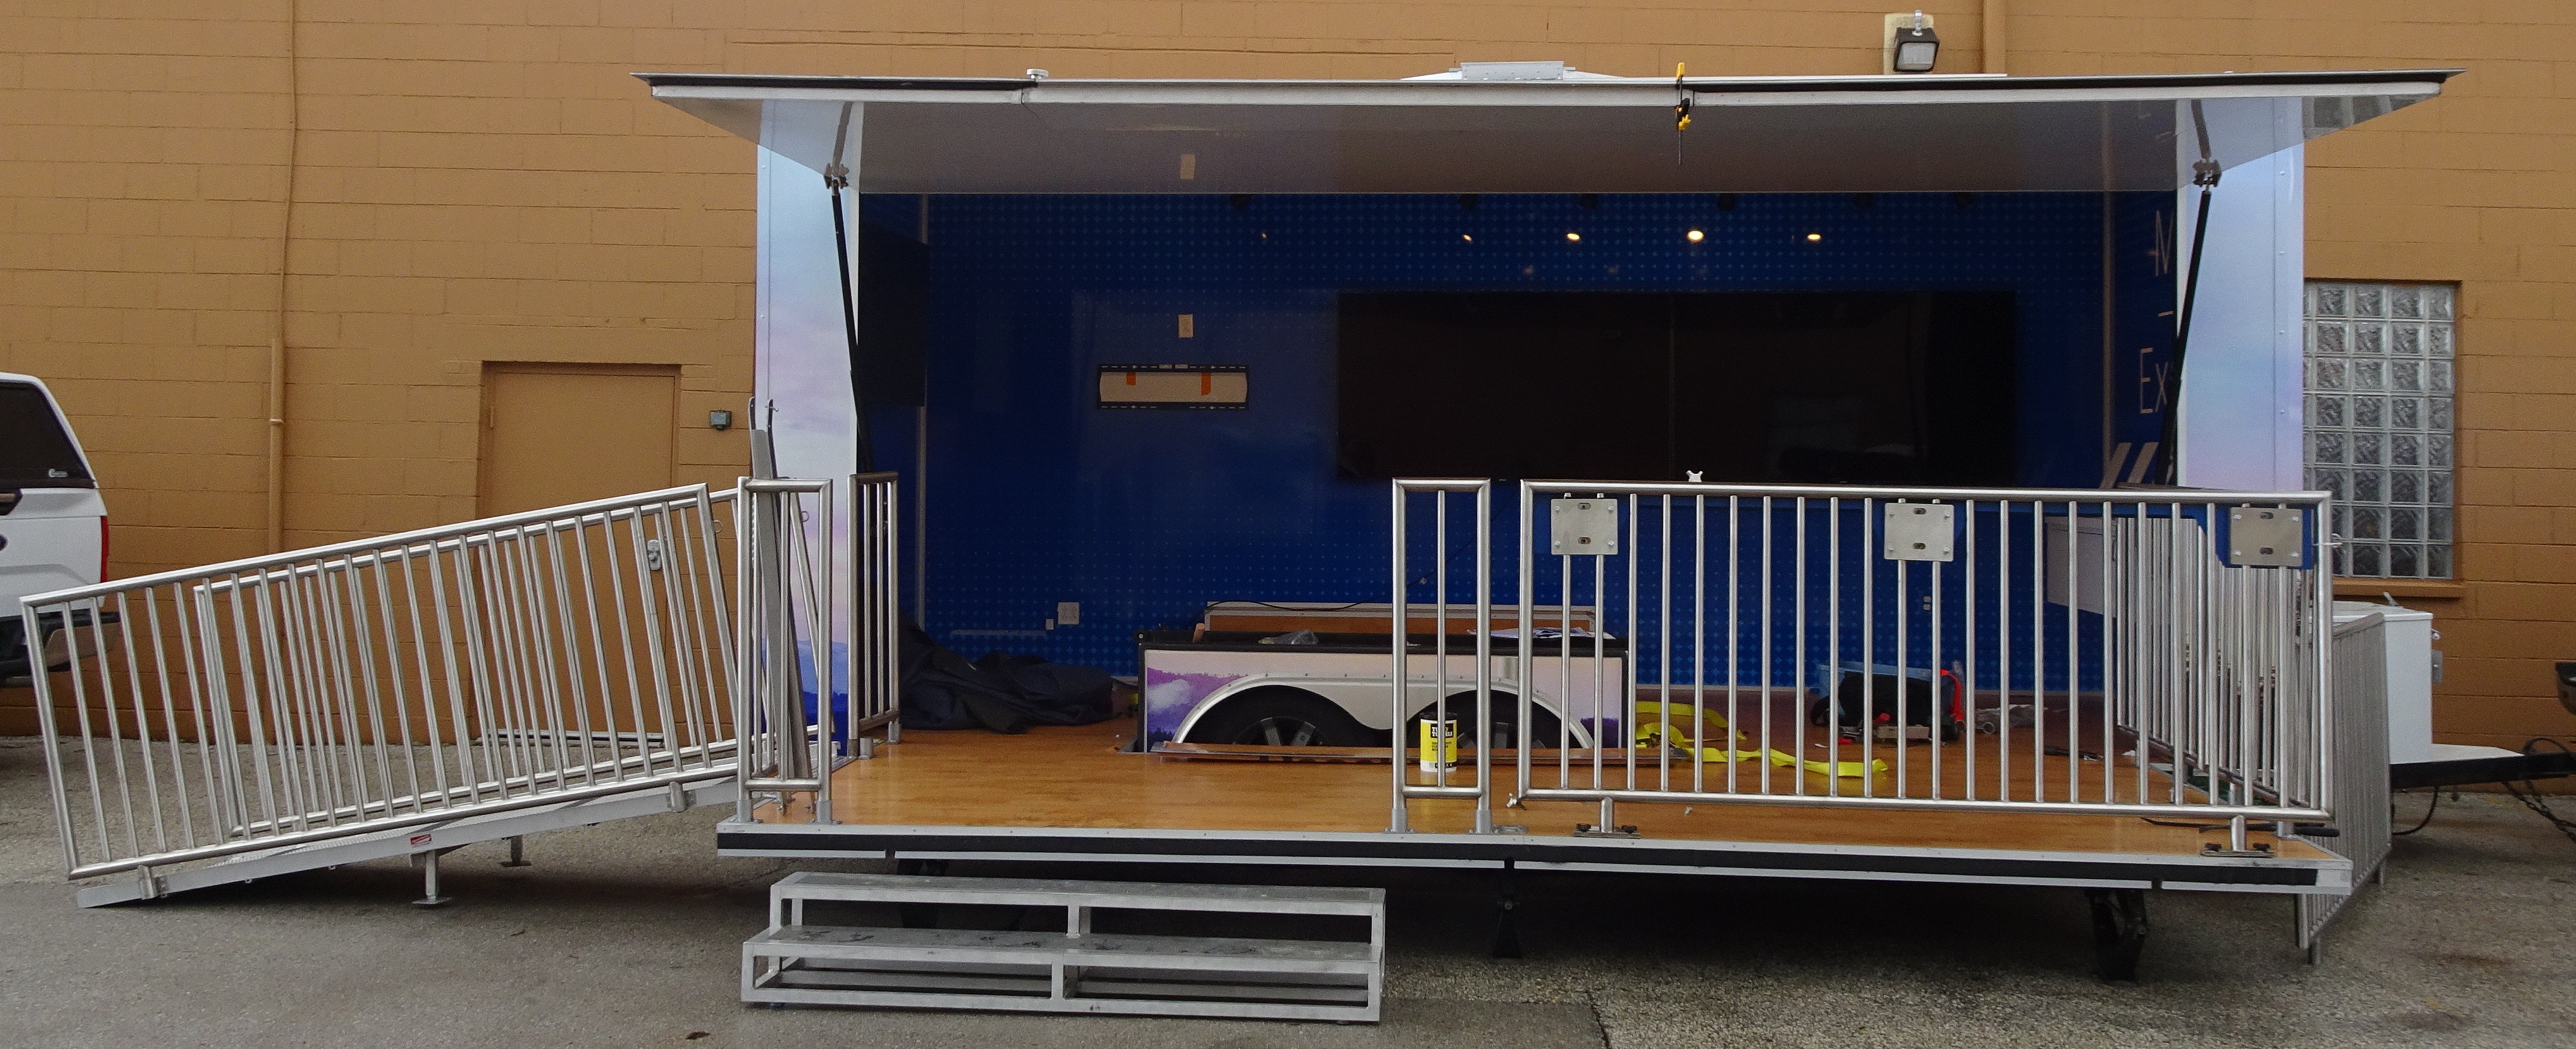 stage trailer current open 2